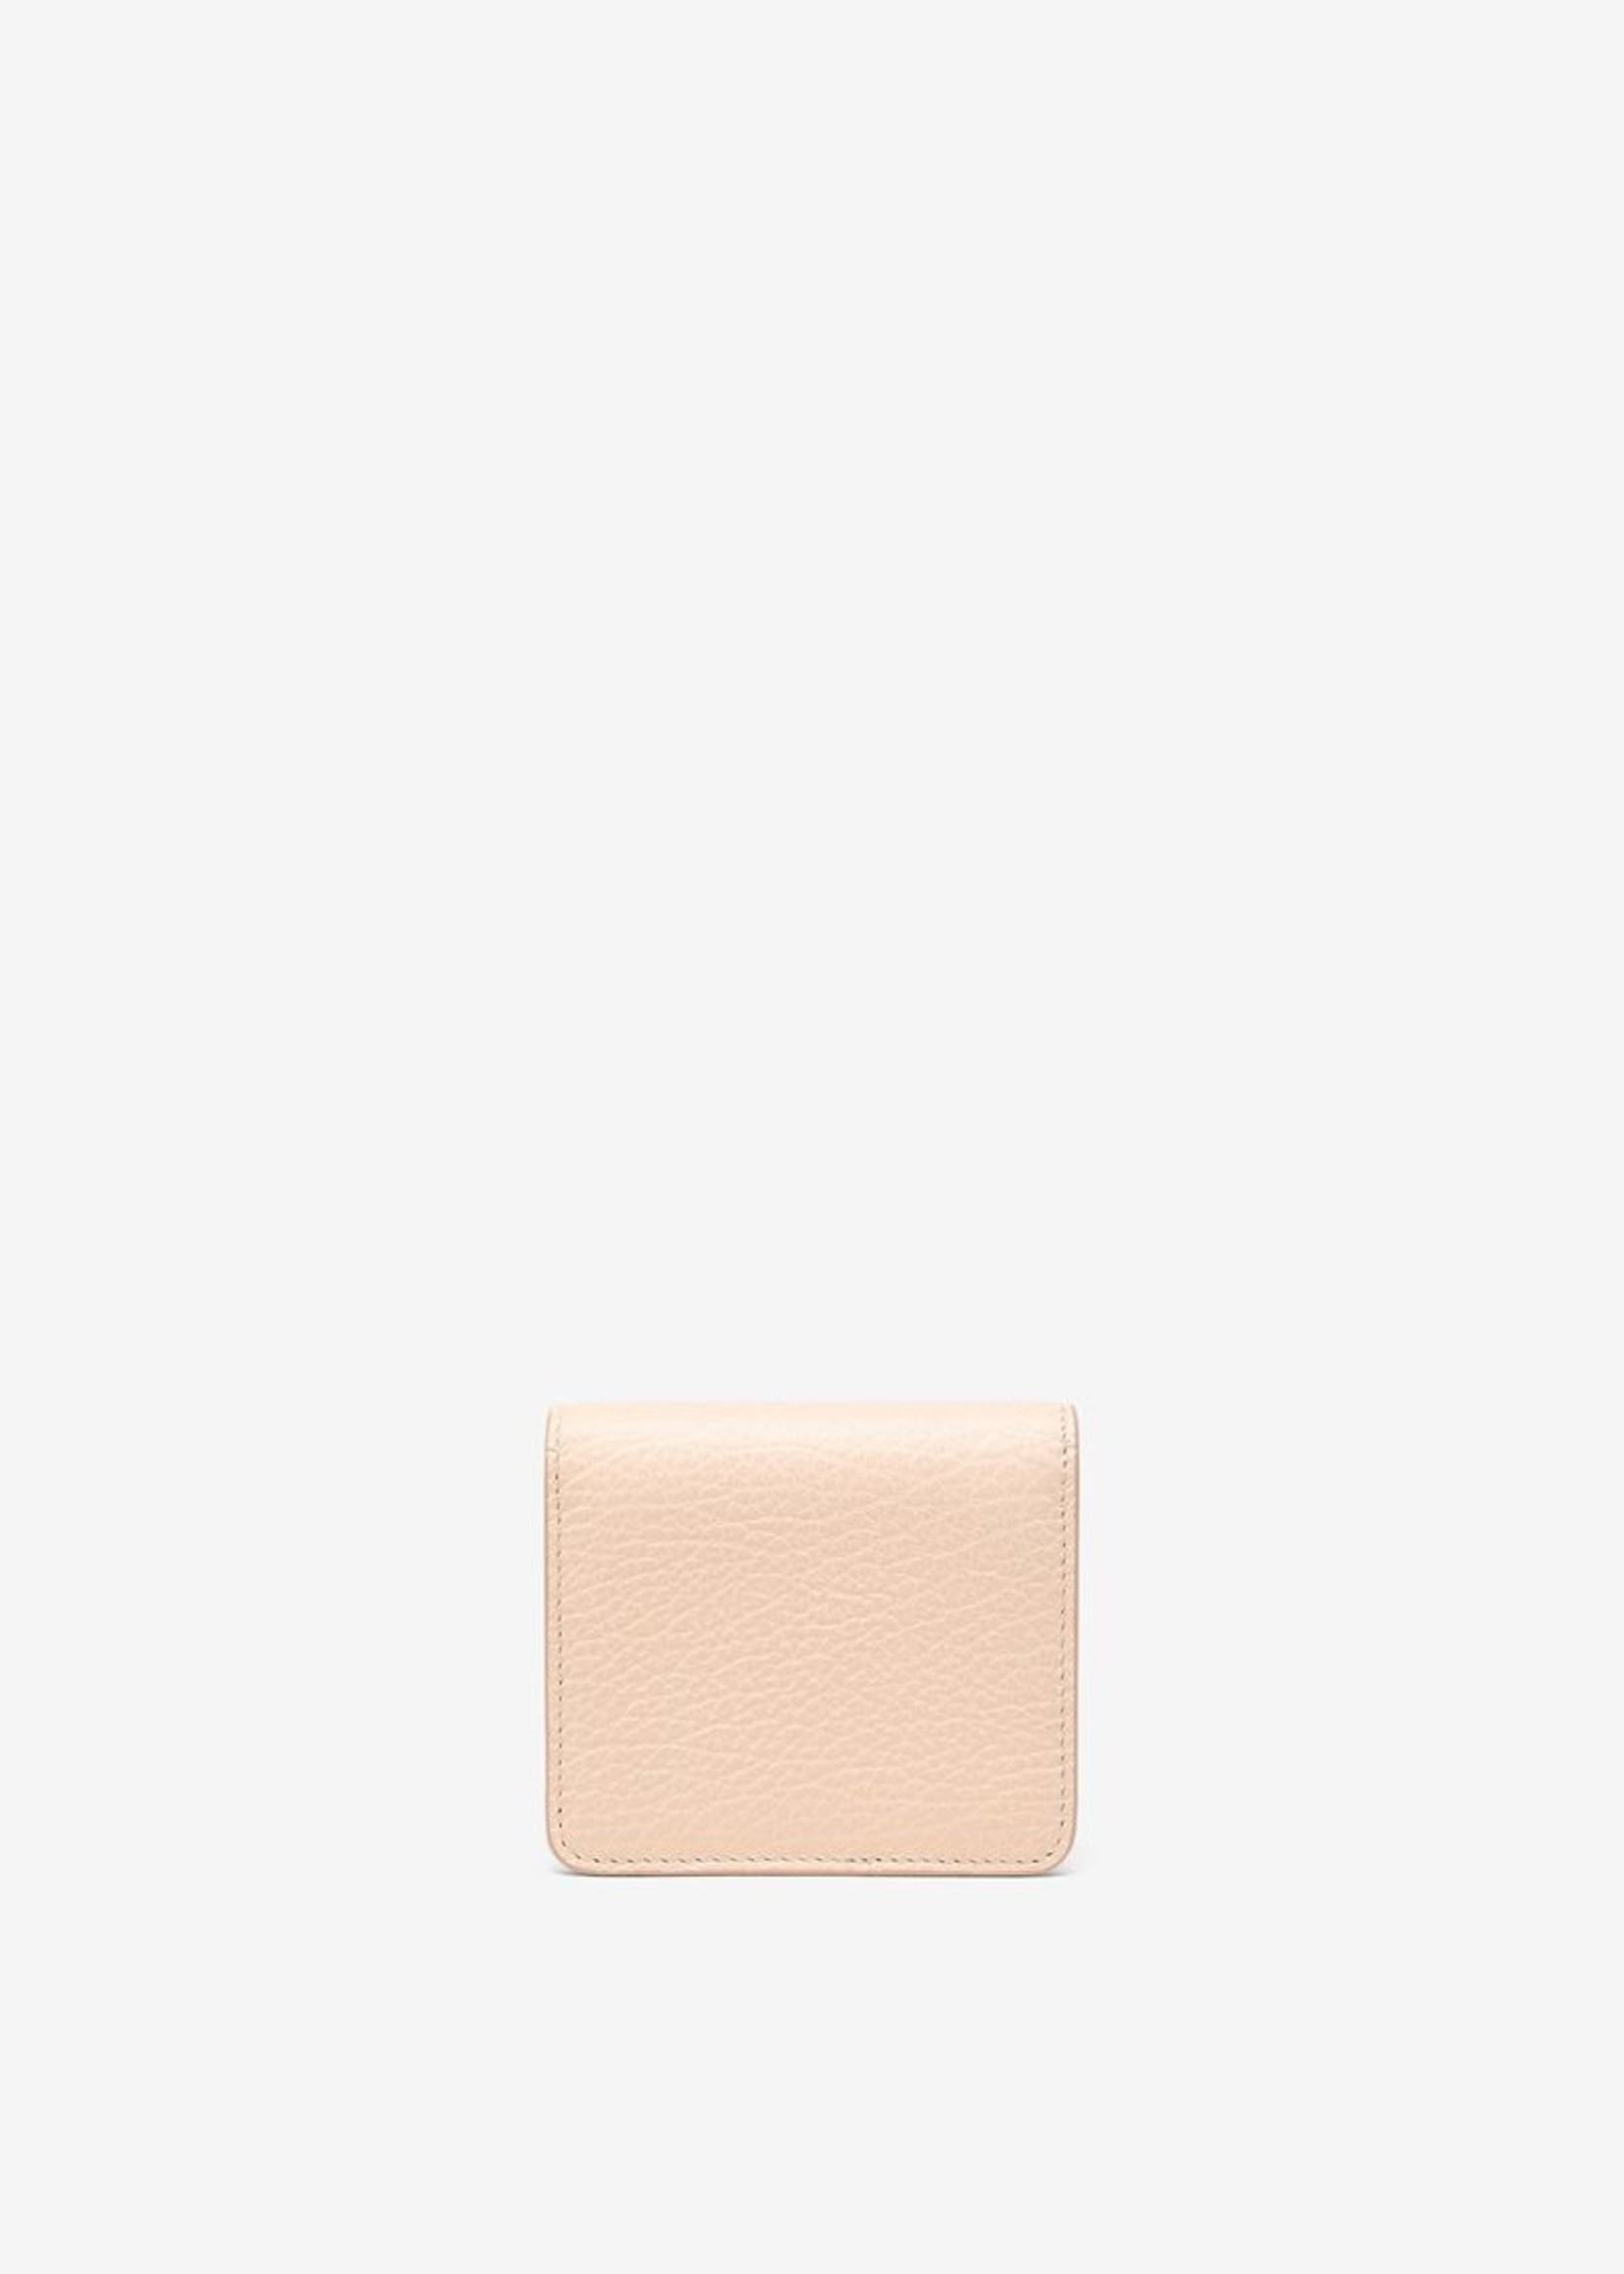 Maison Margiela Small Chain Wallet in Chair